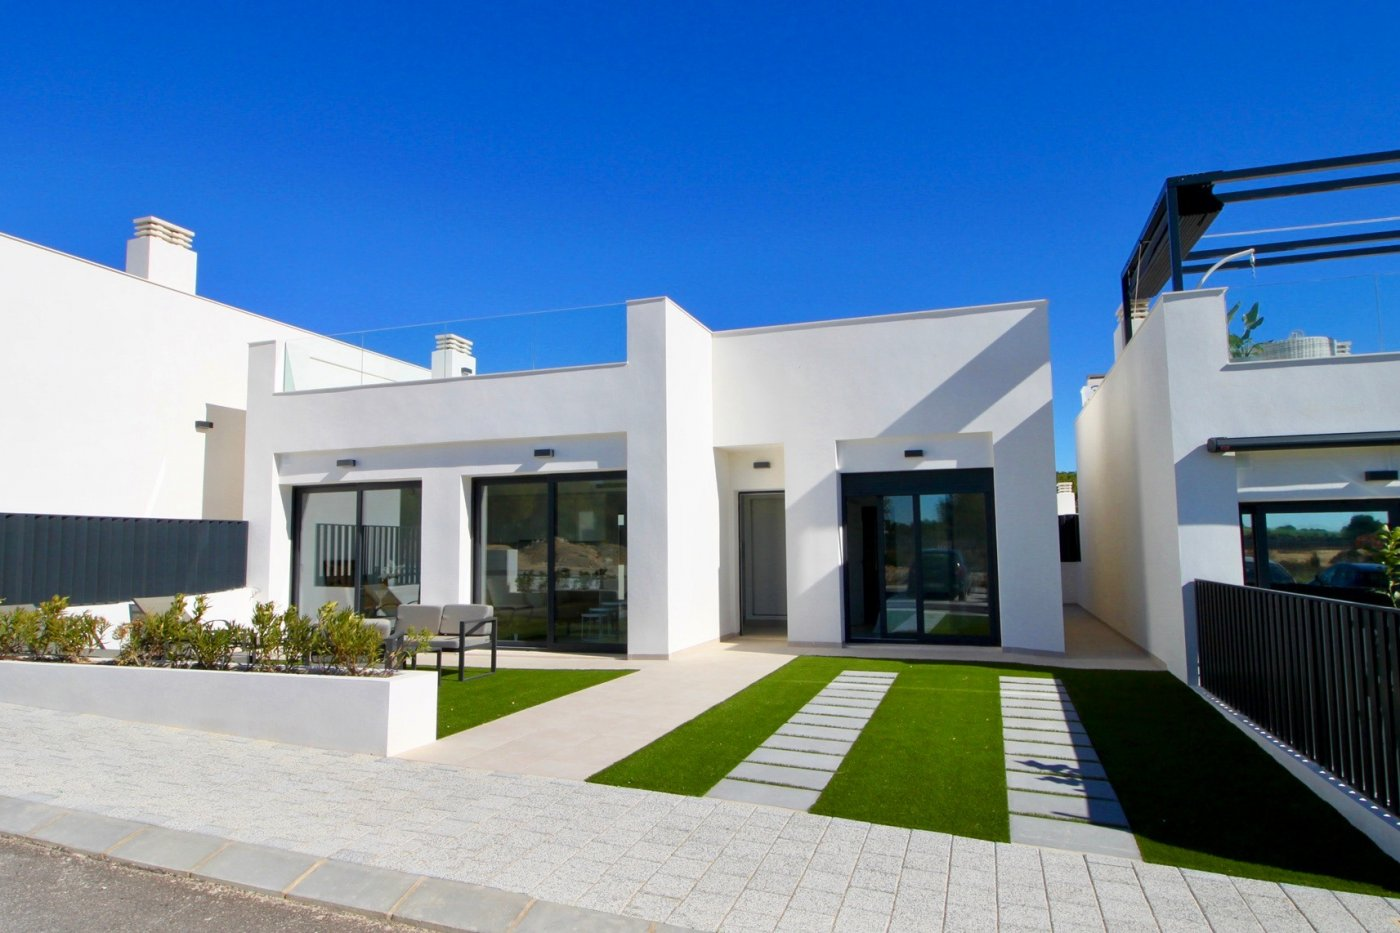 Villa ref 3092 para sale en Lo Romero Golf España - Quality Homes Costa Cálida